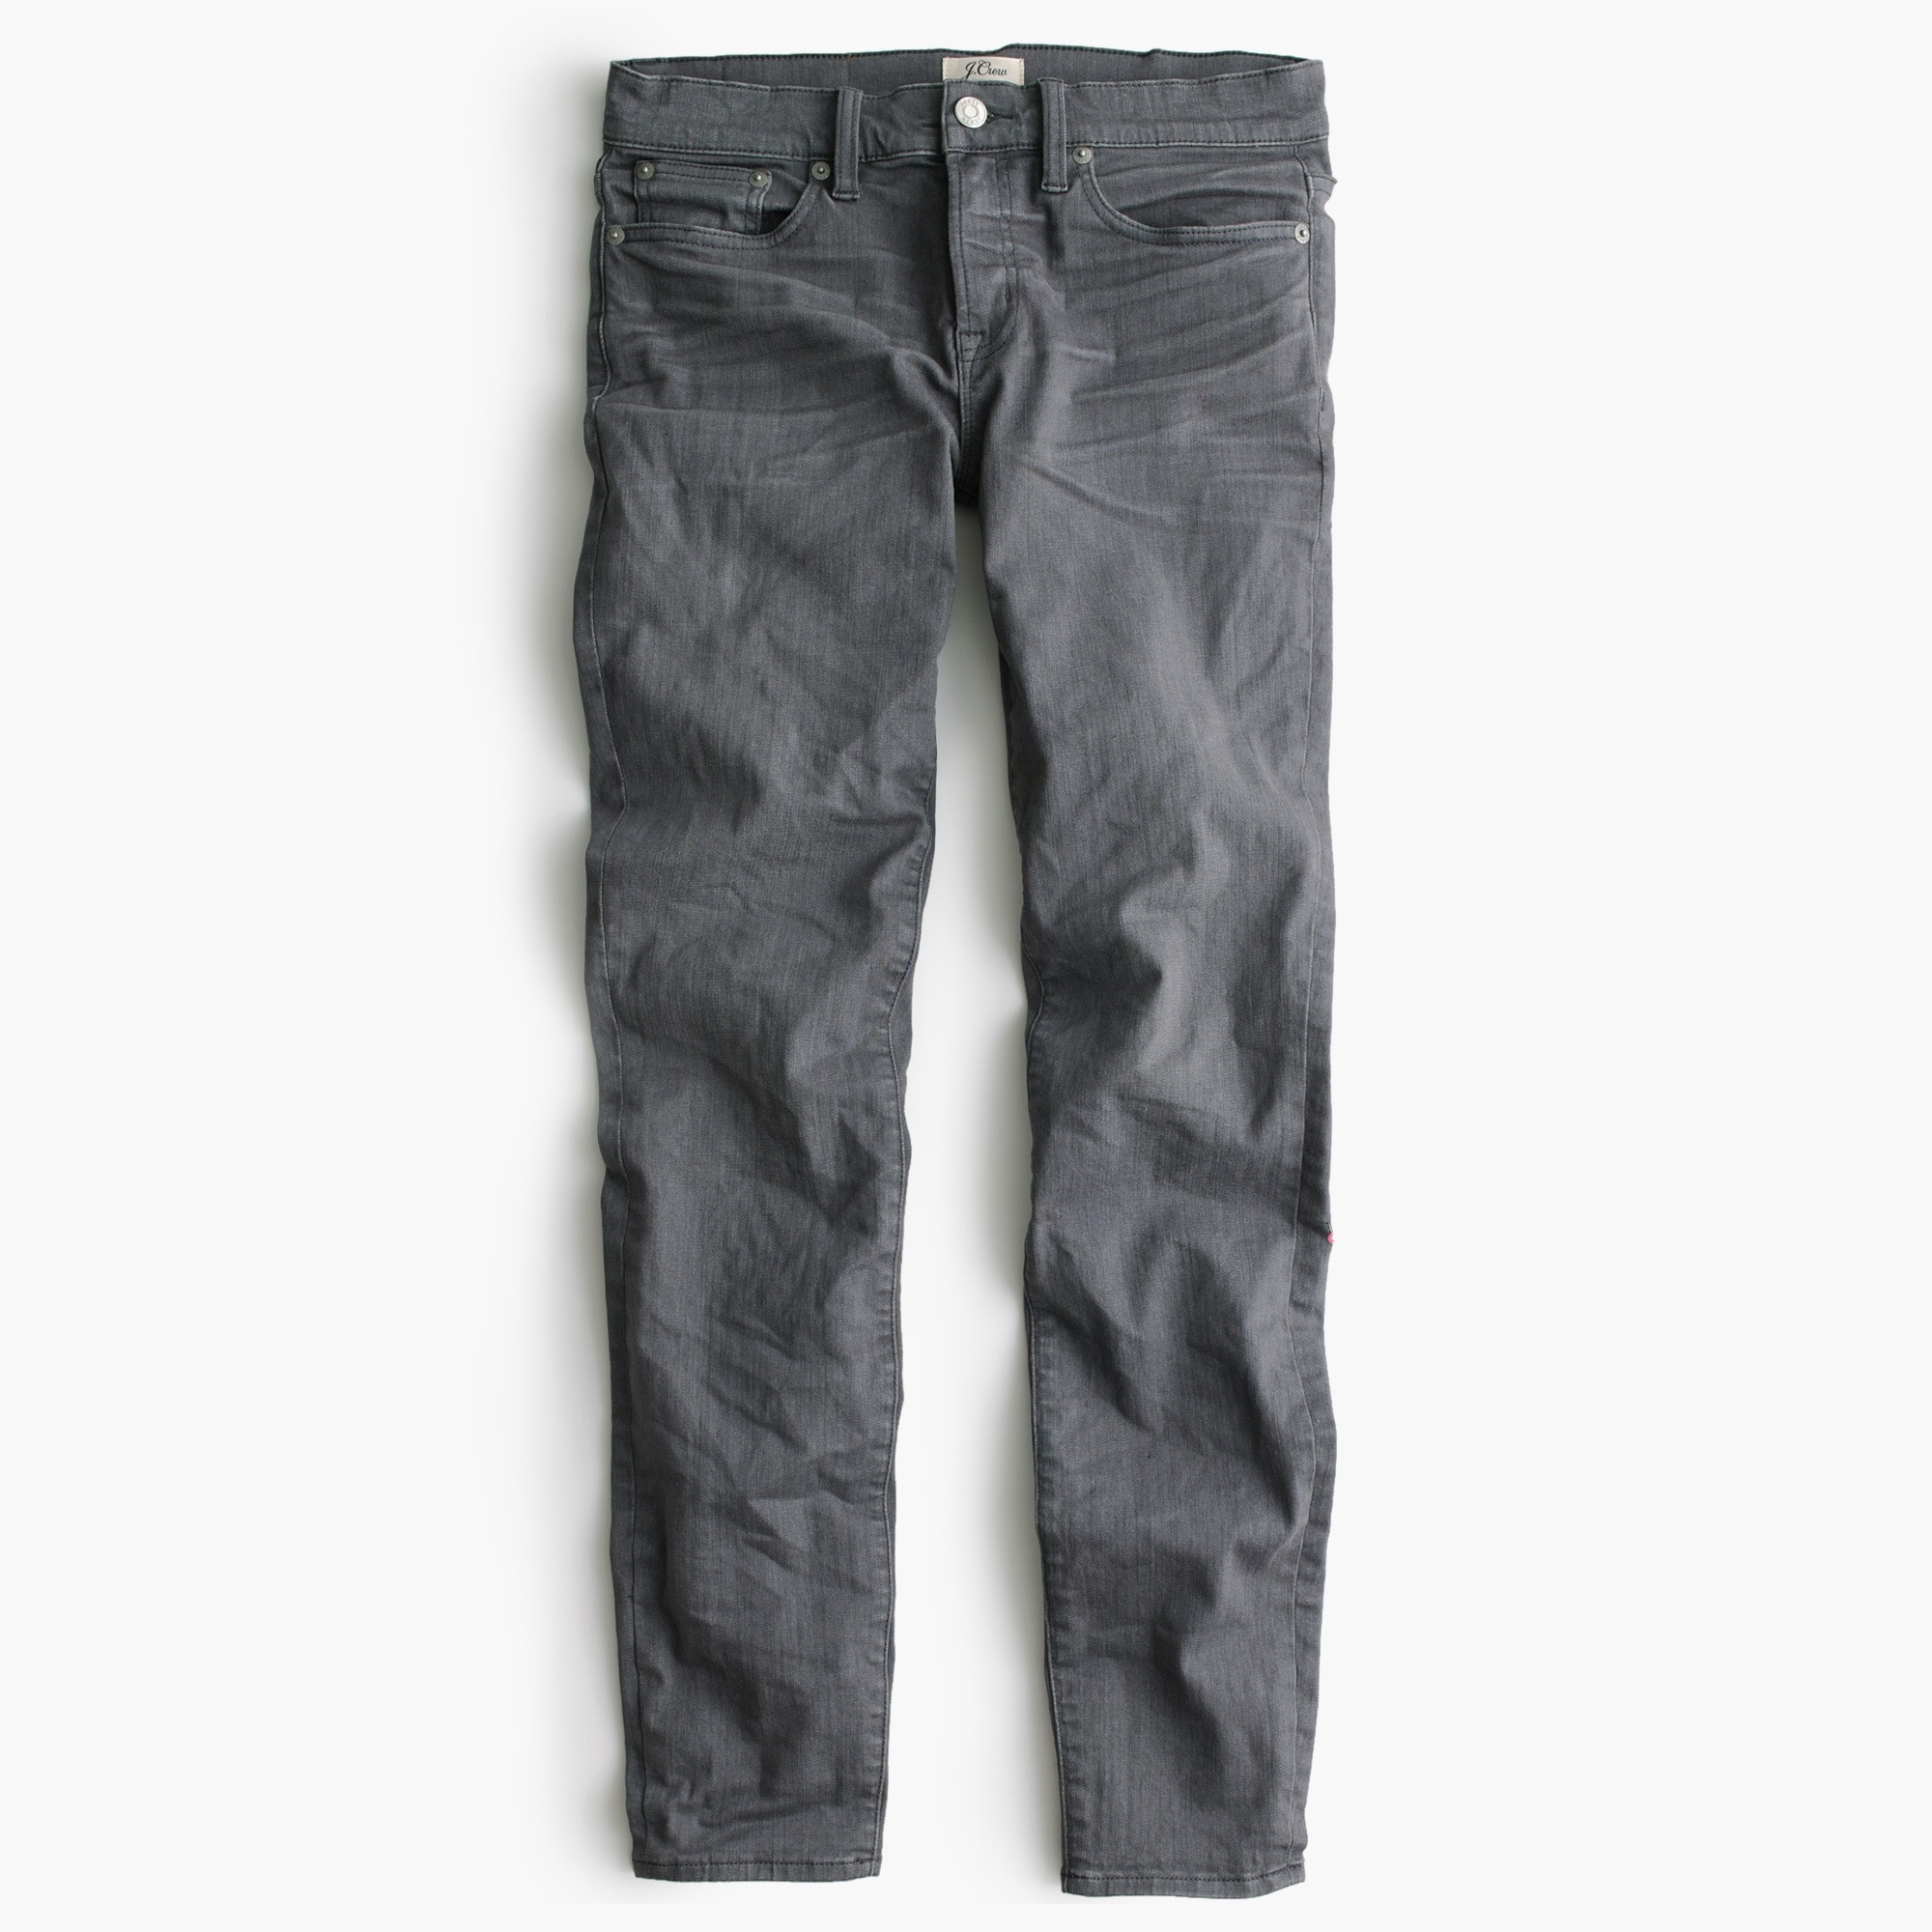 women's petite 8 toothpick jean in grey - women's jeans